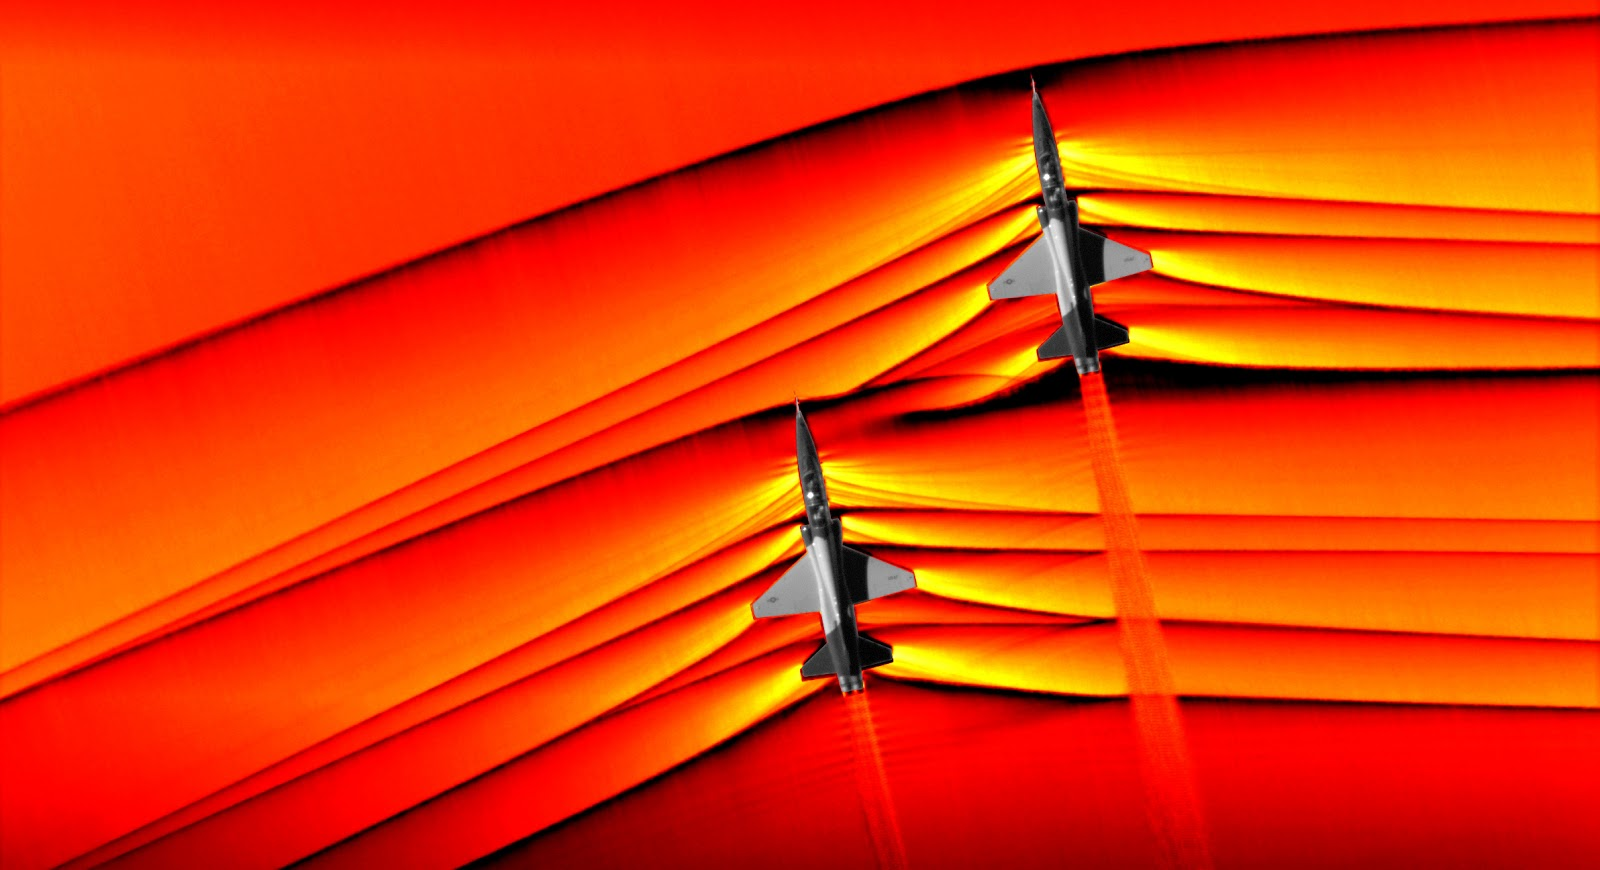 Figure 2: Schlieren Photography Revealing The Interaction Of Shockwaves Produced By Two T 38 Flying In Formation At A Supersonic Speed [4]